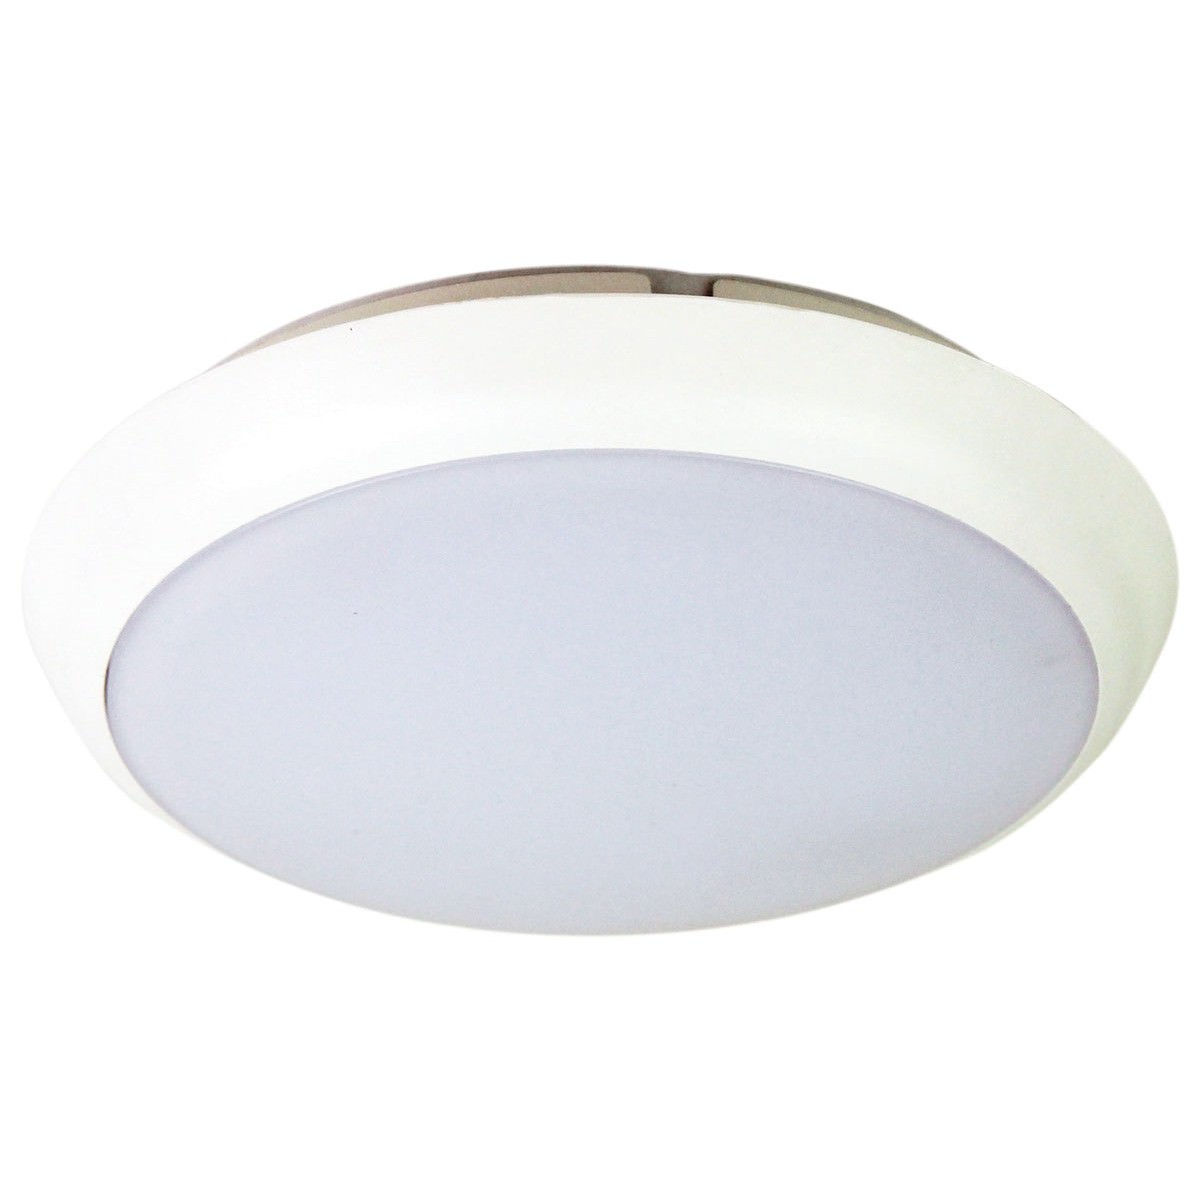 Kore IP54 Indoor / Outdoor Colour Changing LED Oyster Light, 20cm, White